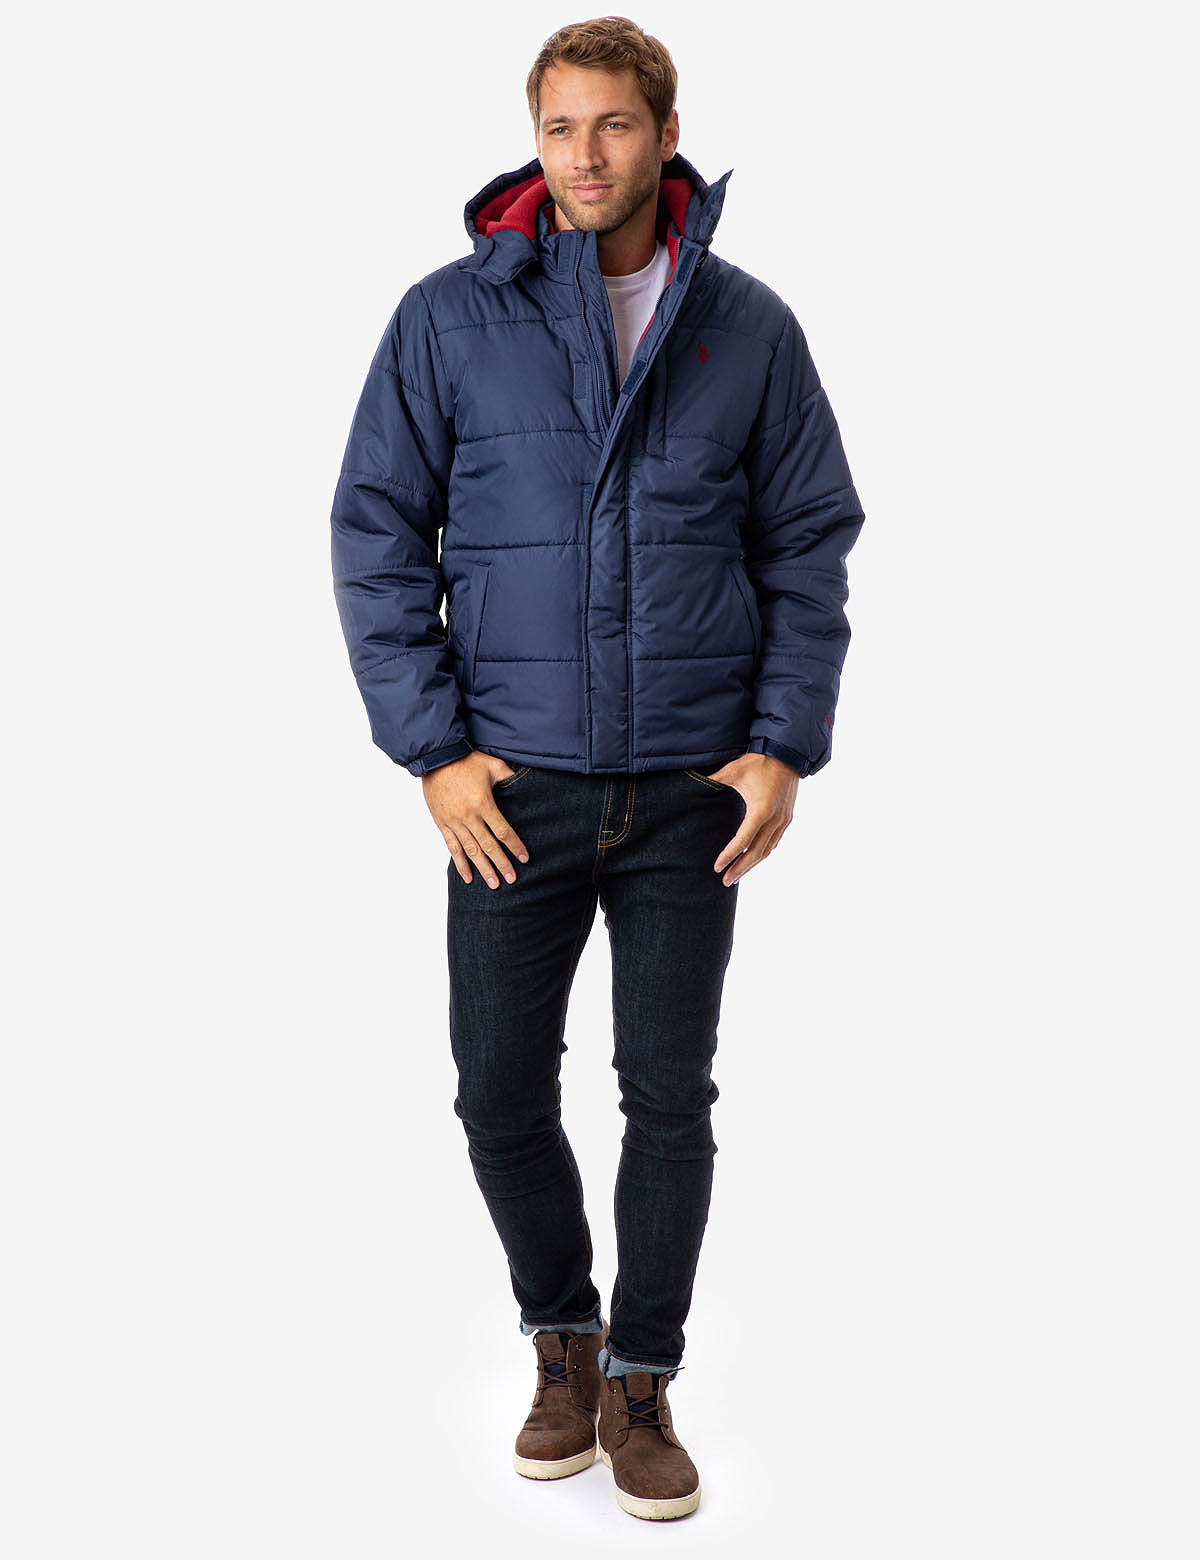 CLASSIC HOODED BUBBLE JACKET - U.S. Polo Assn.